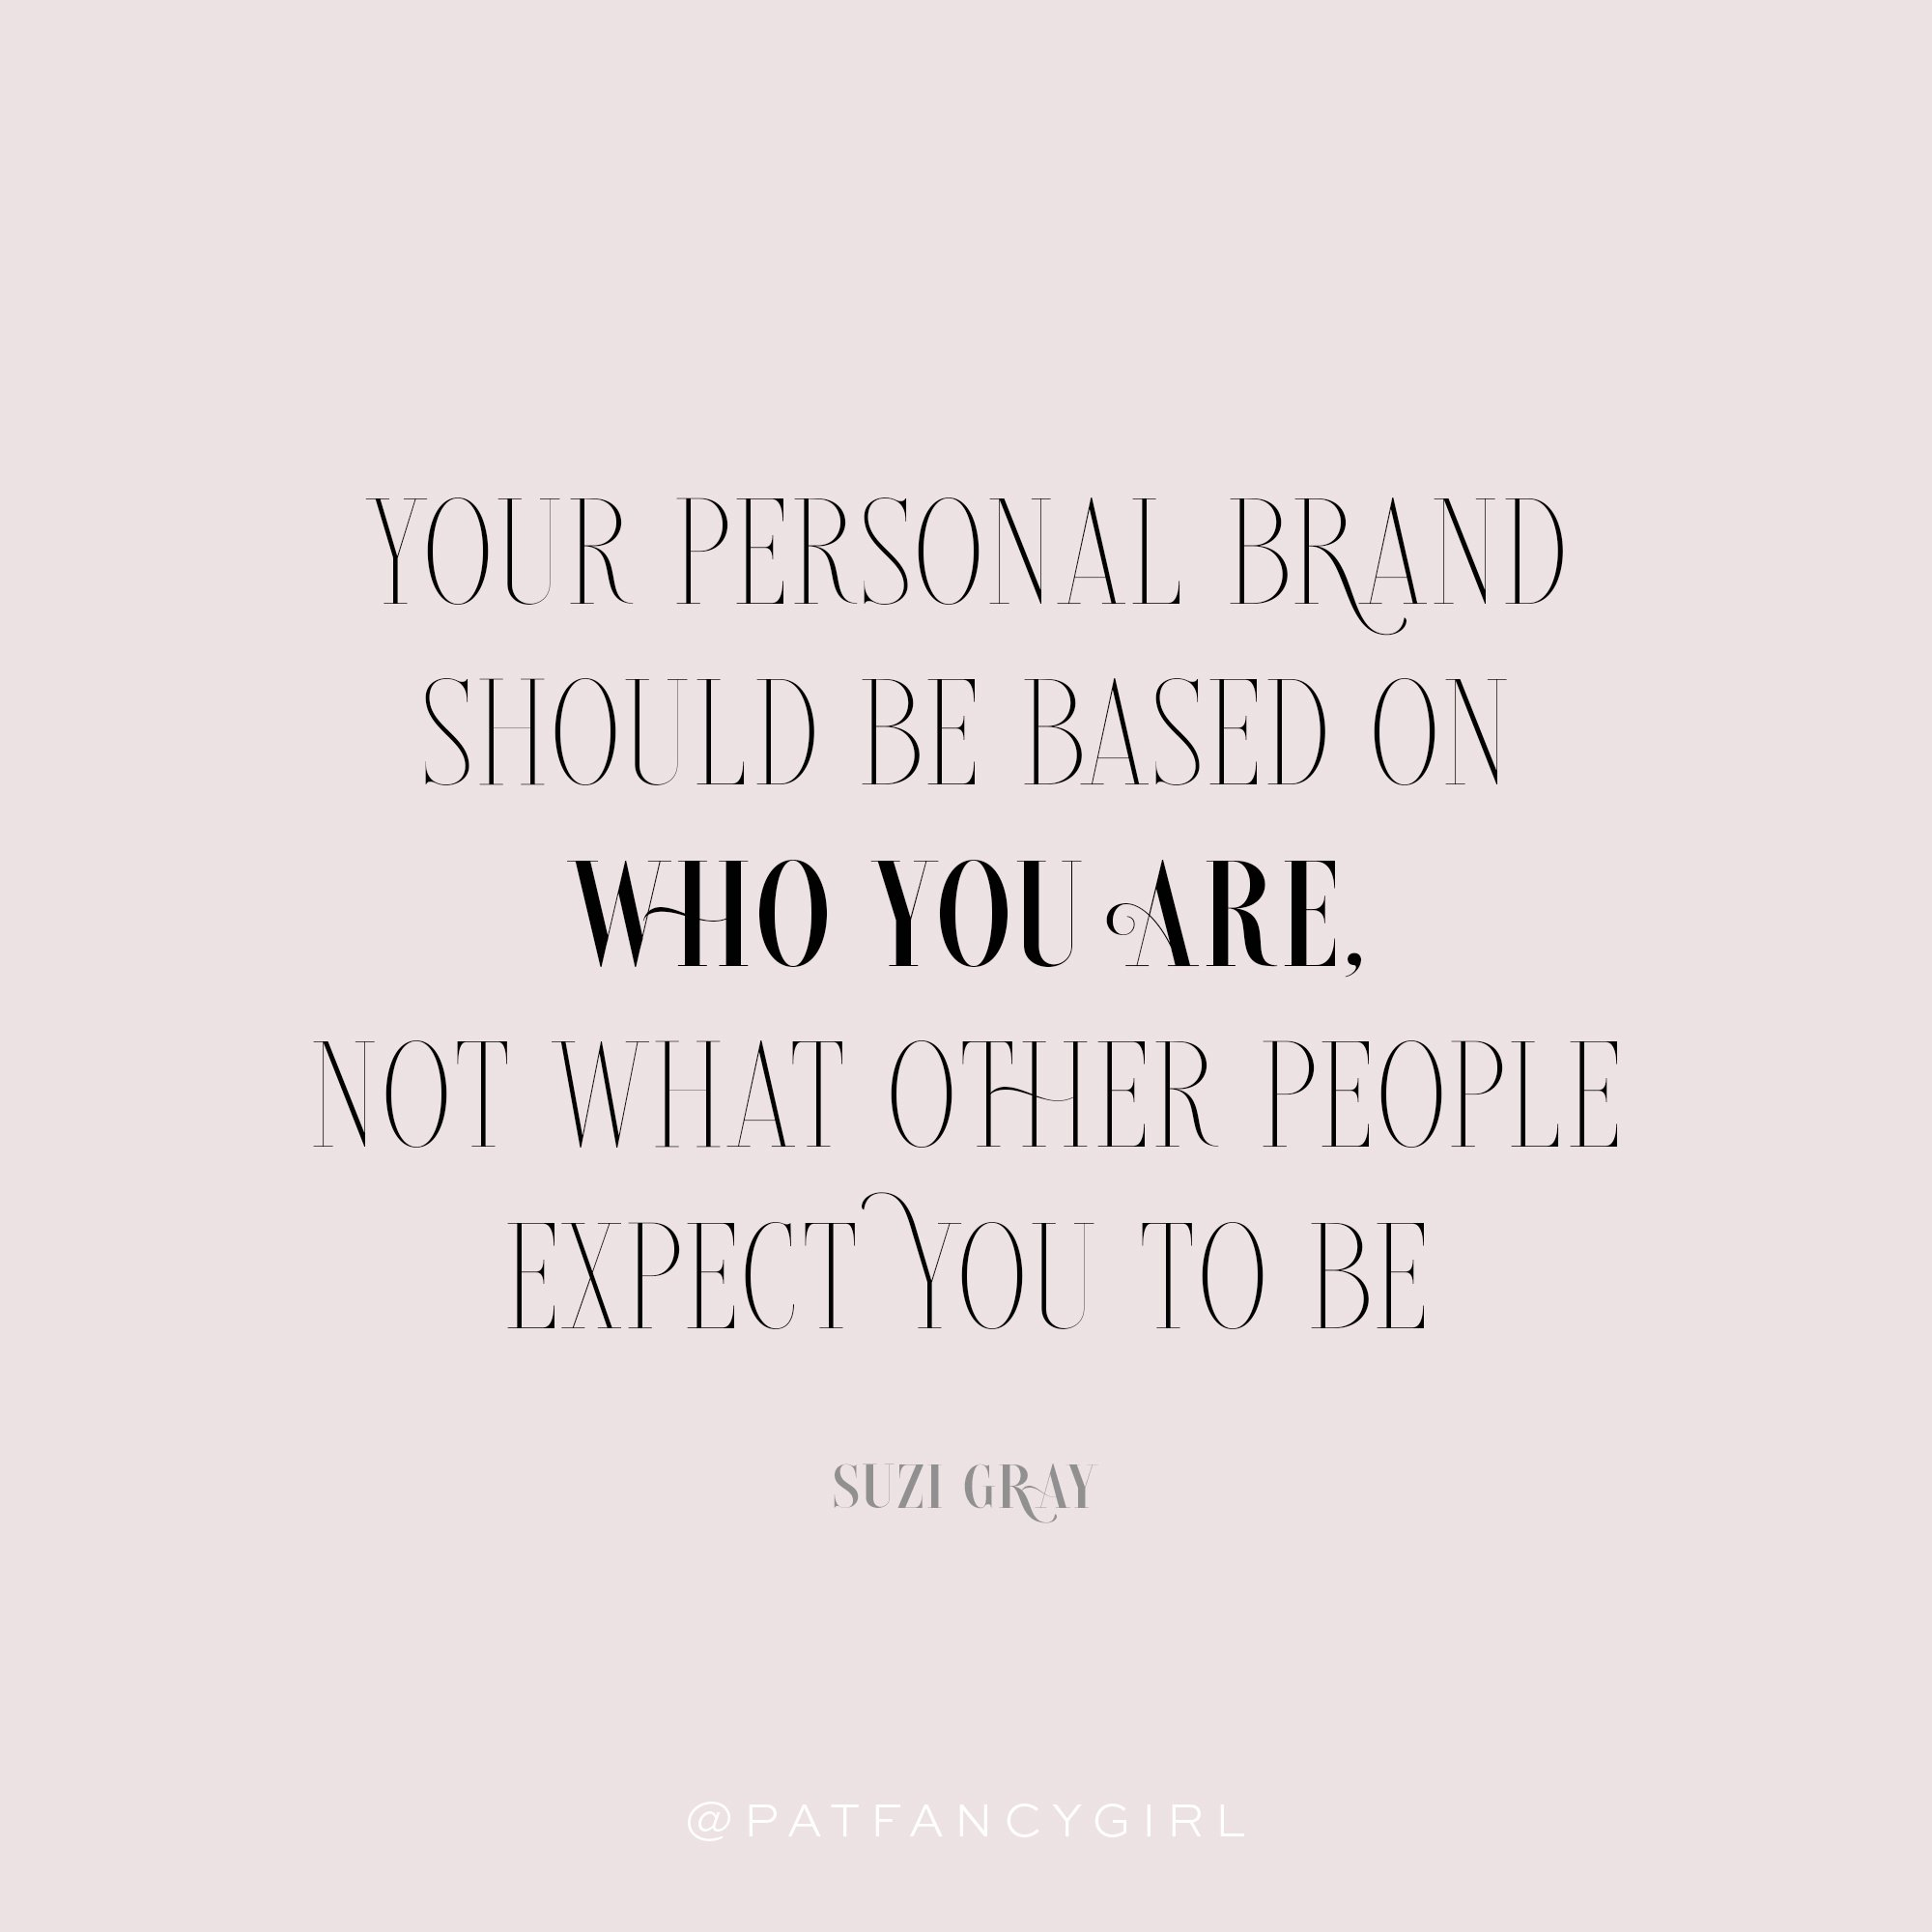 Your personal brand should be based on who you are, not what other people expect you to be.